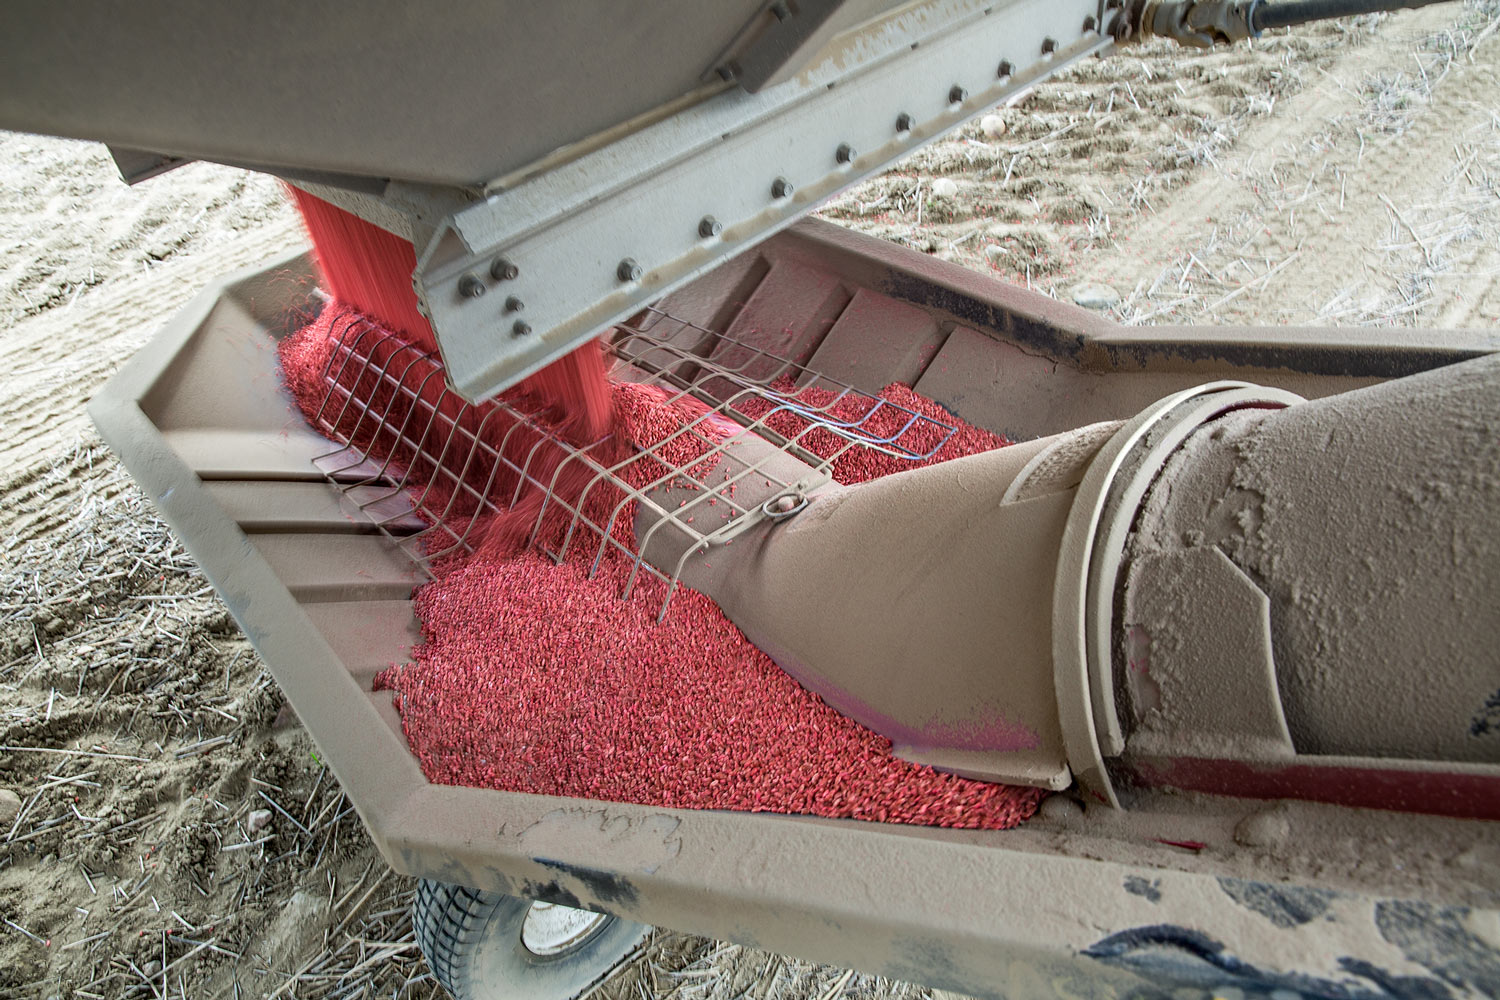 Feeding the Auger